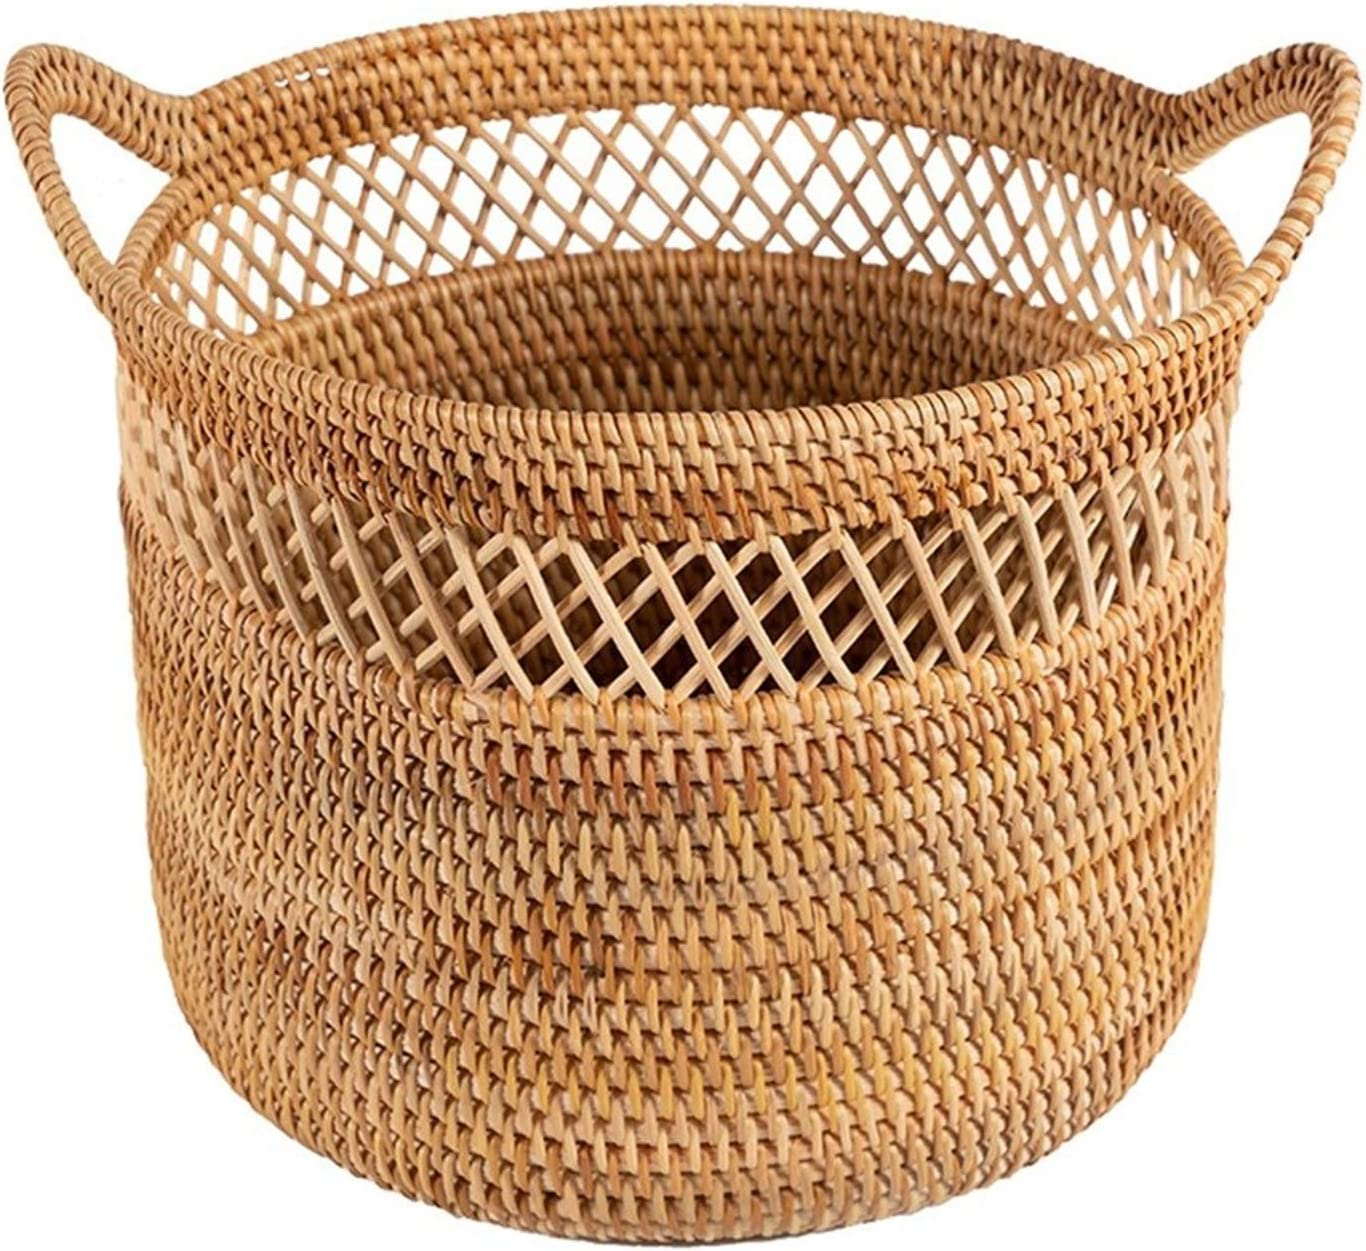 the teapot company Handmade Rattan Basket Max 54% OFF Clothes Storage Dirty Cheap mail order shopping